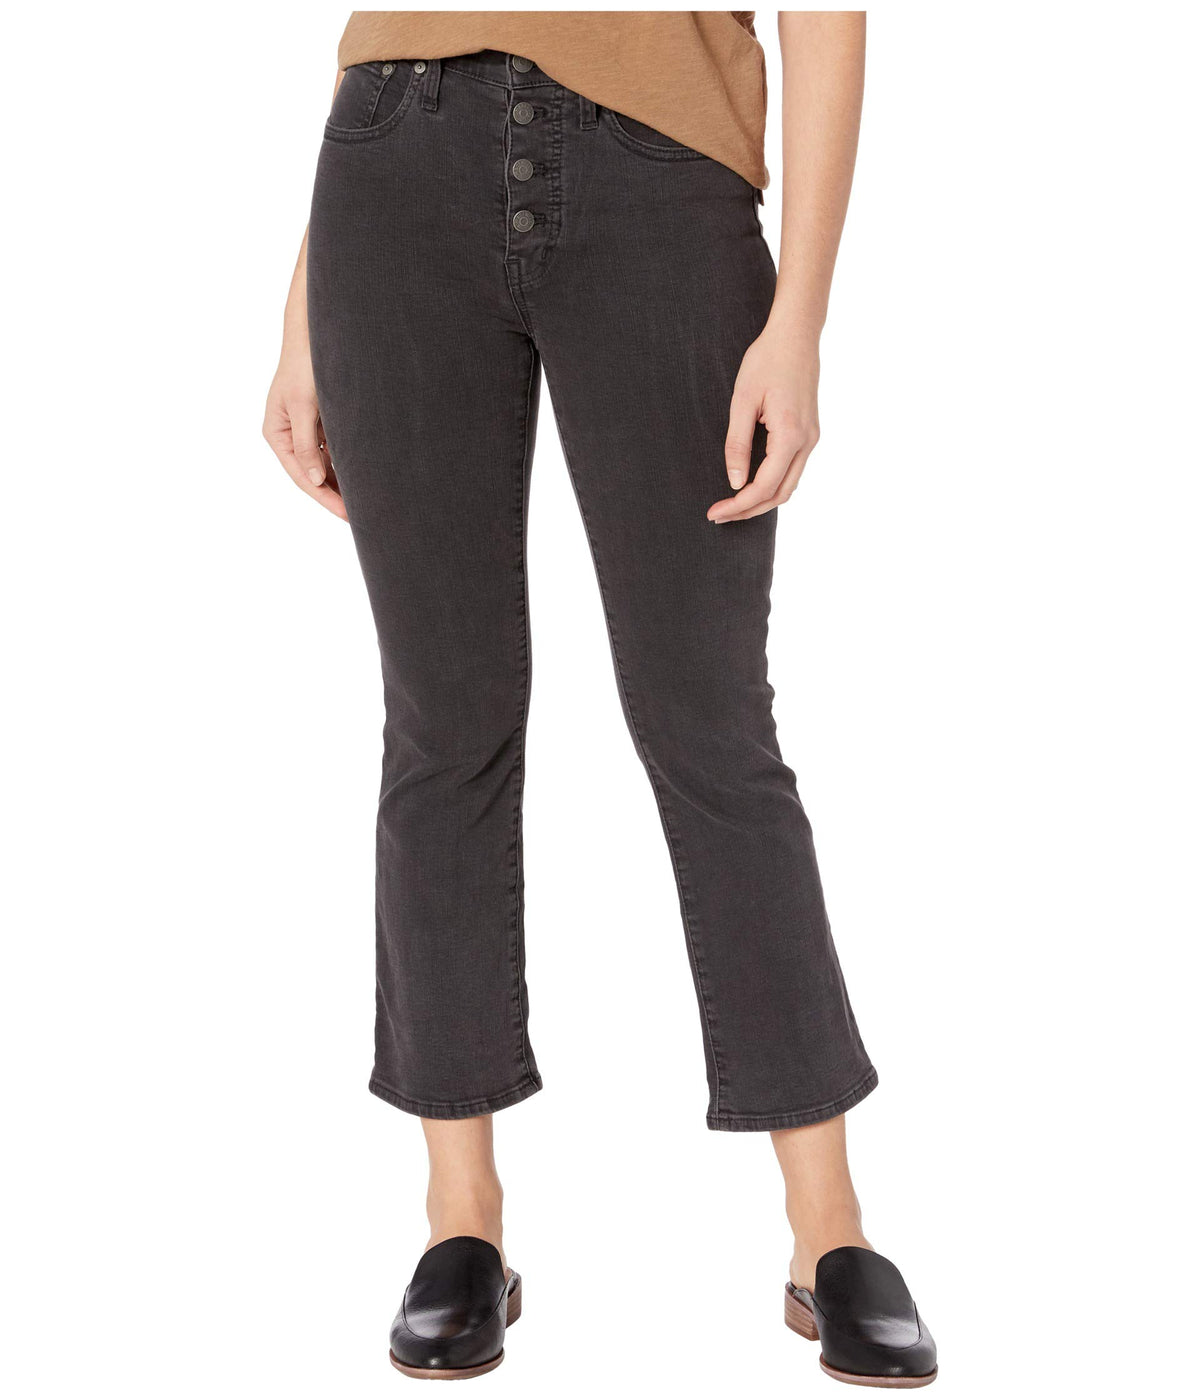 Cali Demi-Boot Jeans in Bellspring Wash